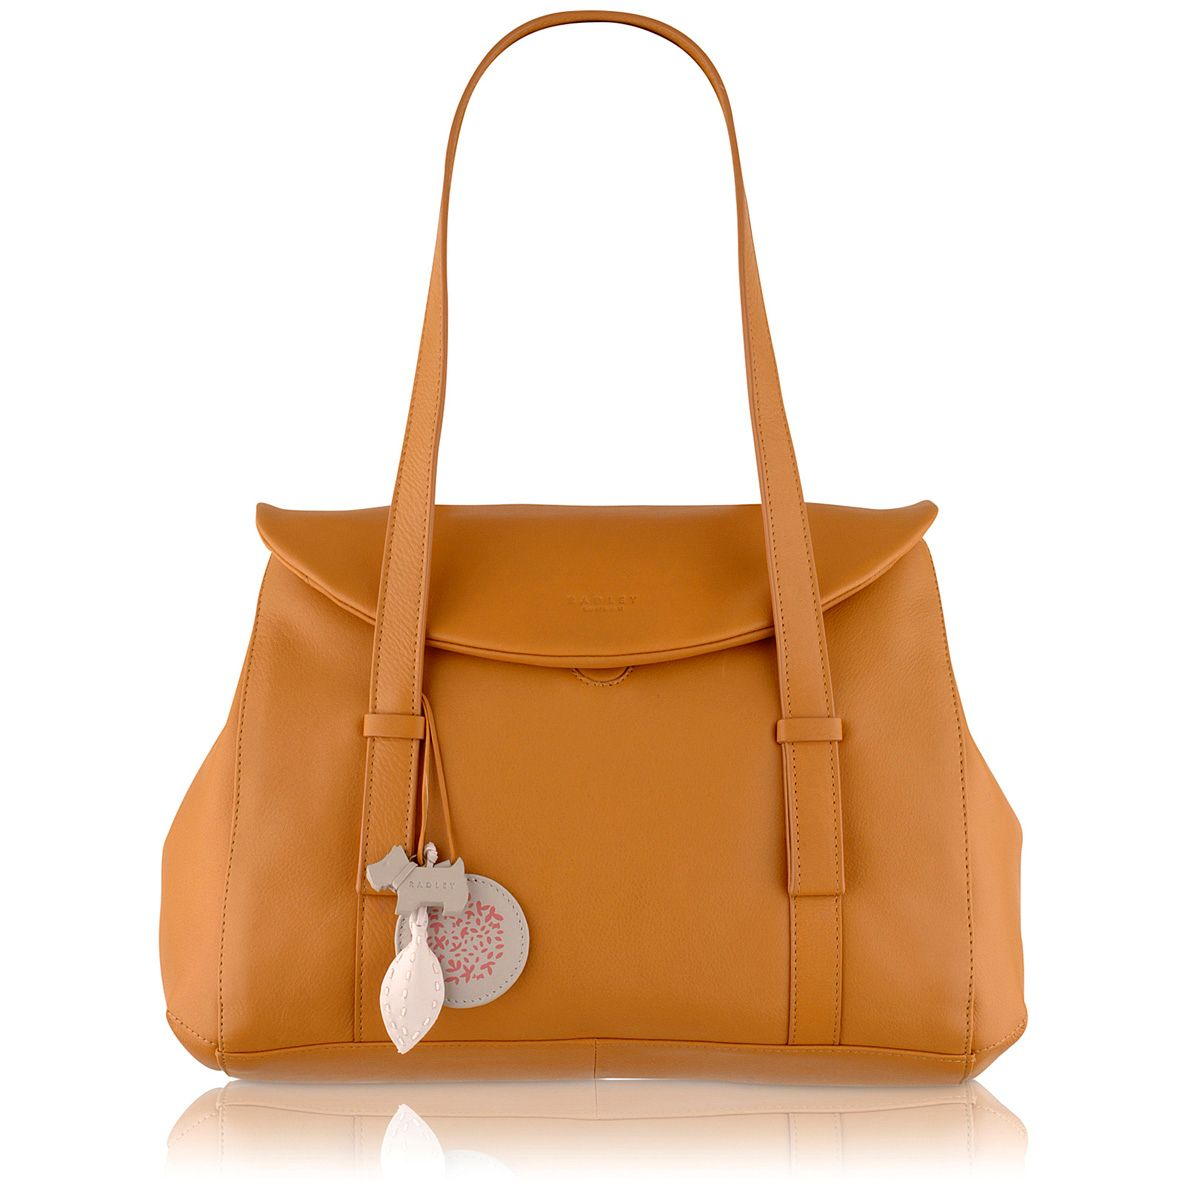 Sherwood tan large flapover tote bag